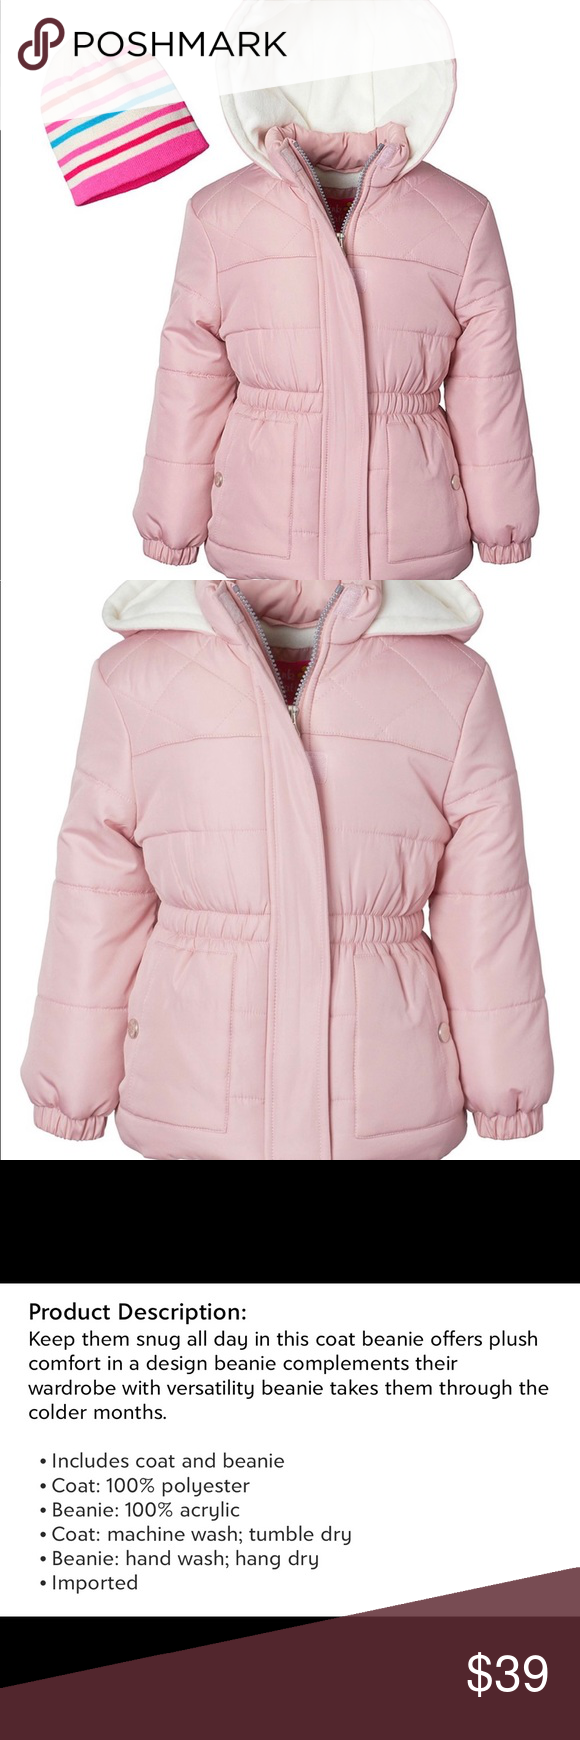 Blush Puffer Jacket Jackets Cozy Jacket Quilted Puffer Jacket [ 1740 x 580 Pixel ]